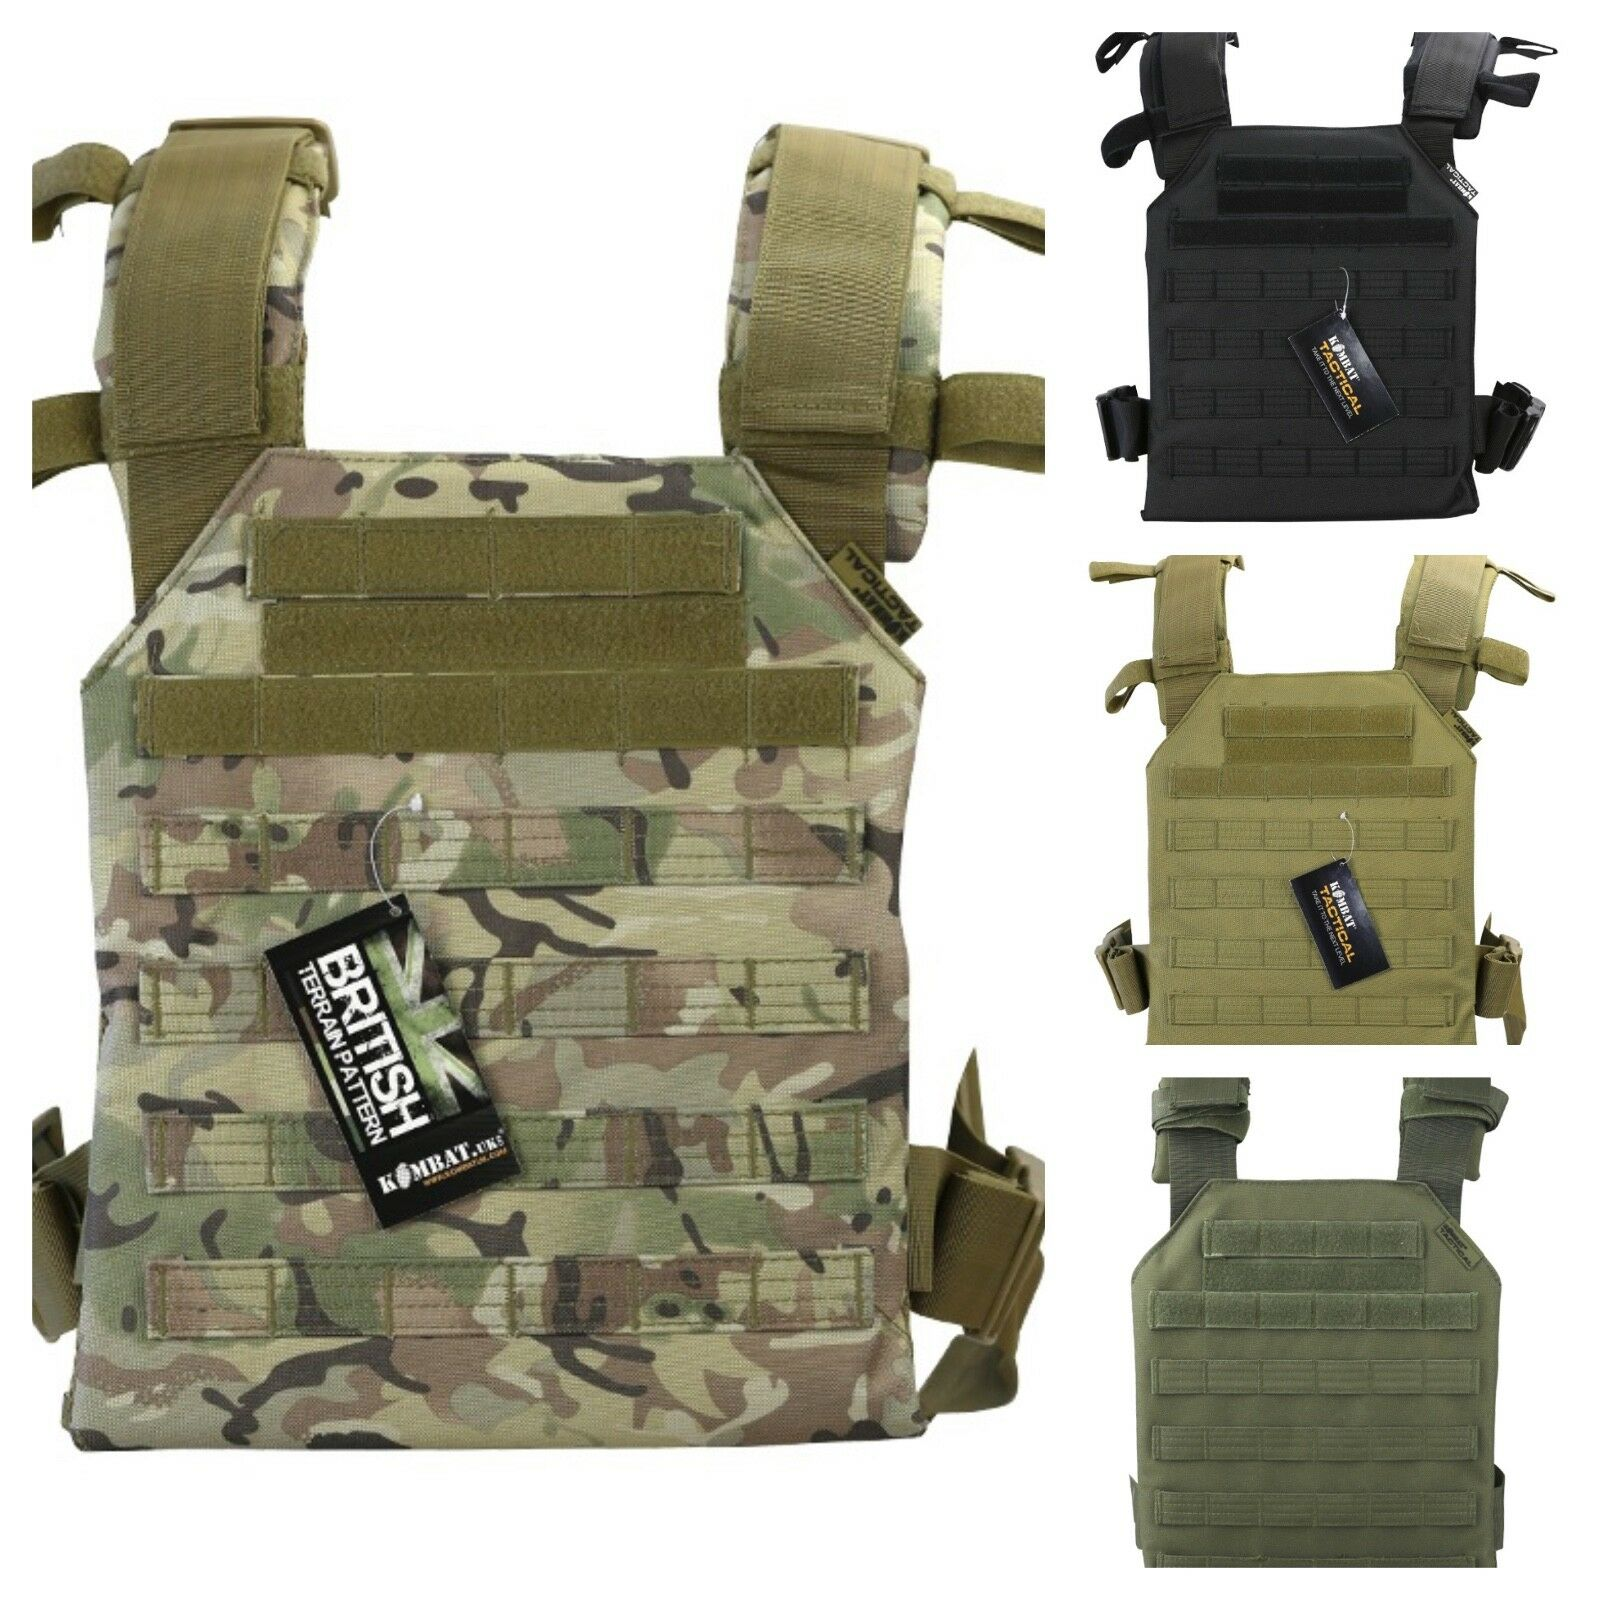 Flyye tactical sling for ciras plate carrier vest kgl investments kuwait